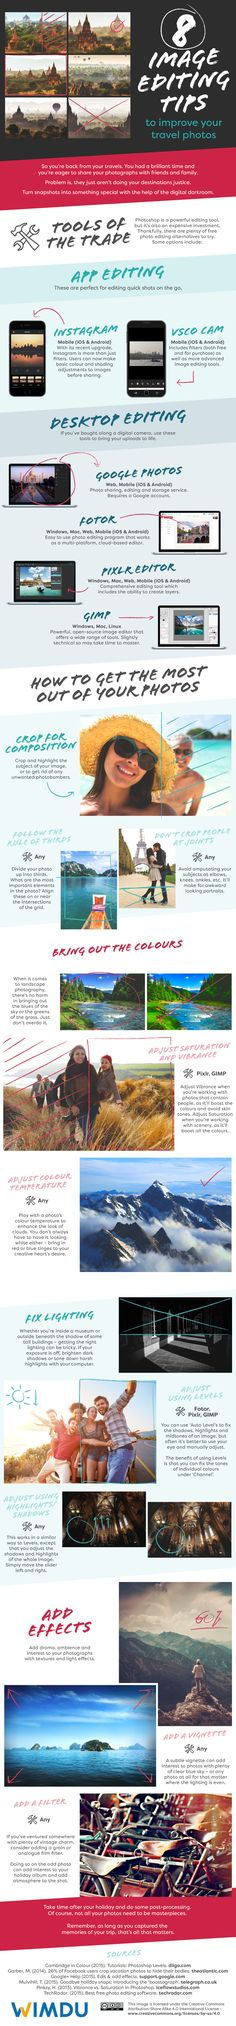 This infographic features some tools and tips that can turn your photos into something special.